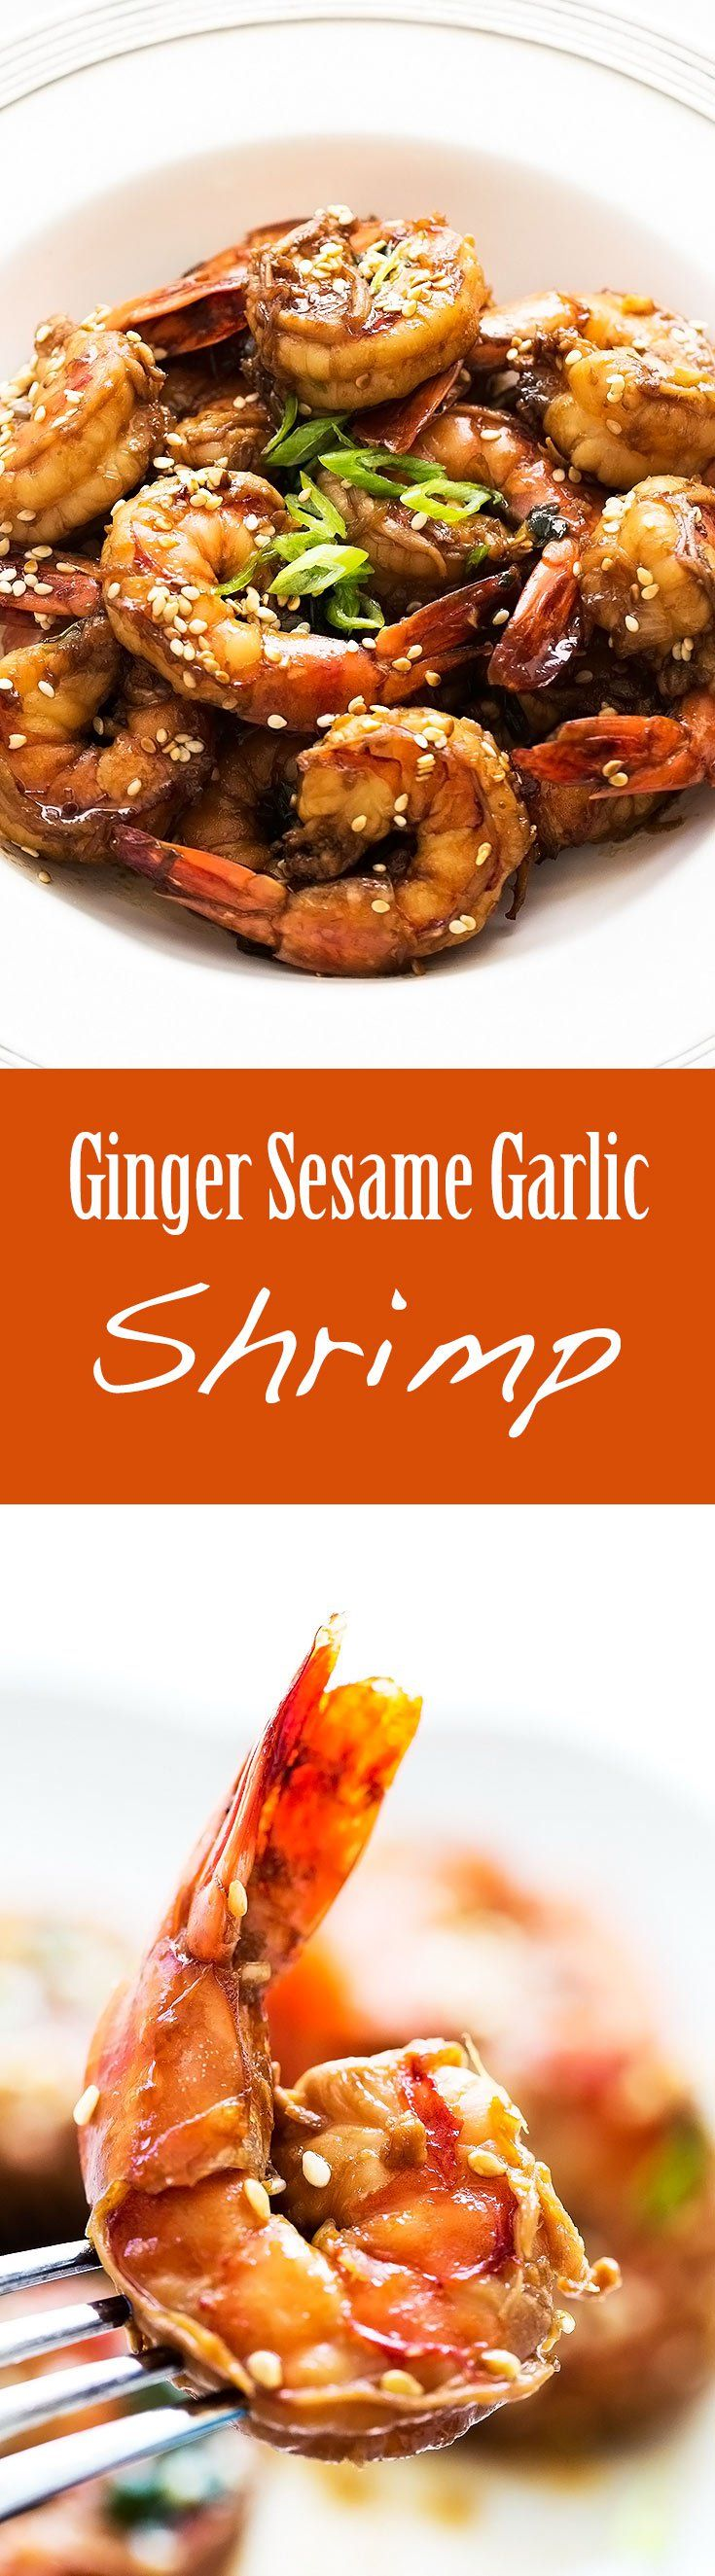 Quick and easy! Shrimp marinated in a ginger sesame garlic soy sauce marinade, then quickly stir-fried. Easy prep, 10 minute cook time! On SimplyRecipes.com